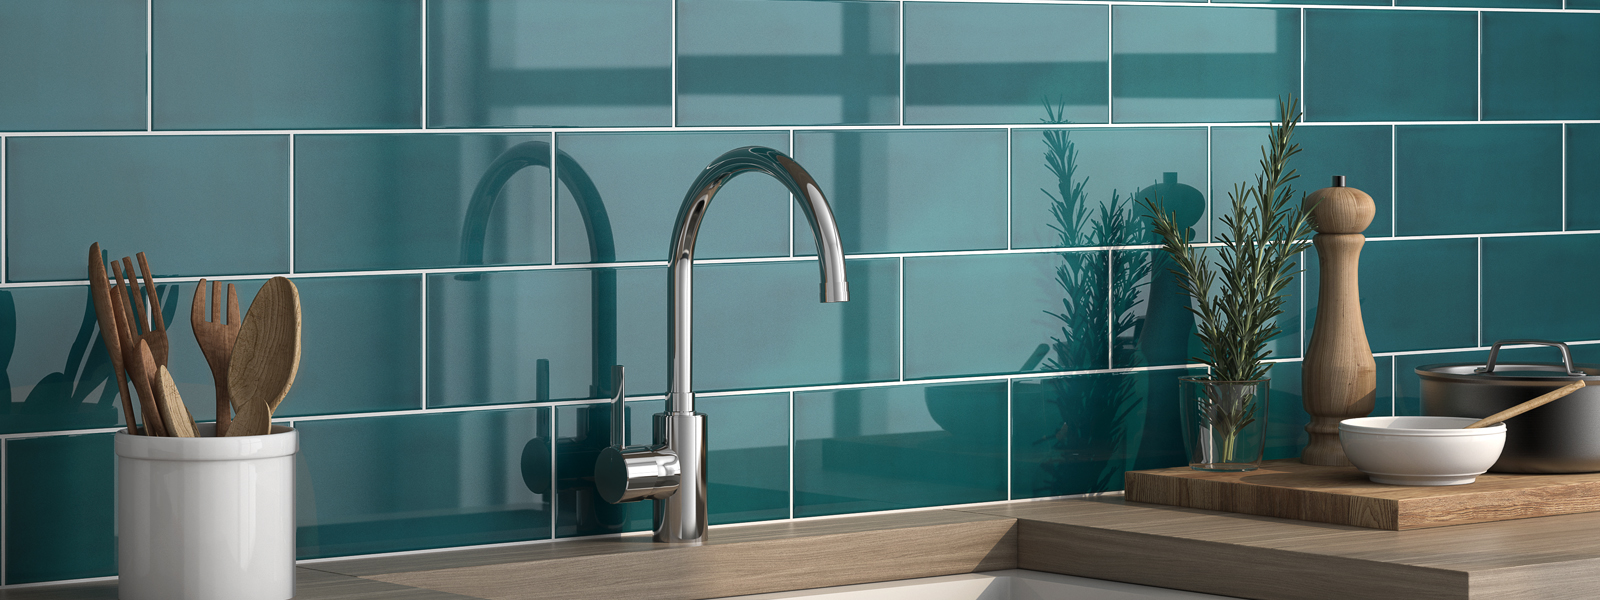 Shine Ceramic Wall Tile Collection Creative Materials